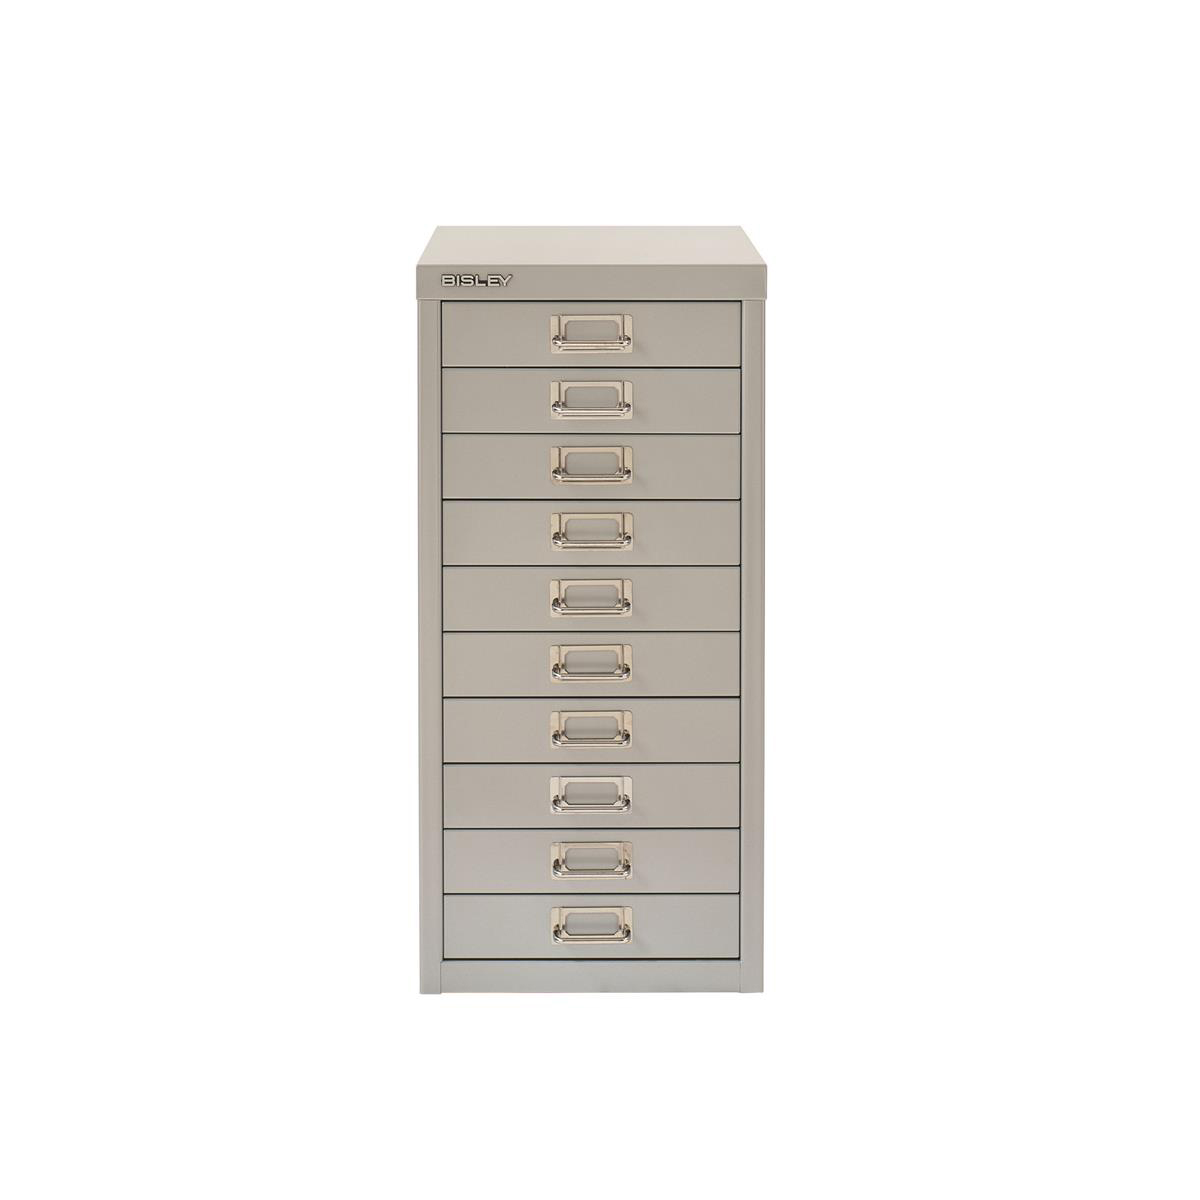 Filing cabinets or accesories Bisley SoHo 10 Drawer Multidrawer 279x380x590mm Grey Ref H2910NL-av4